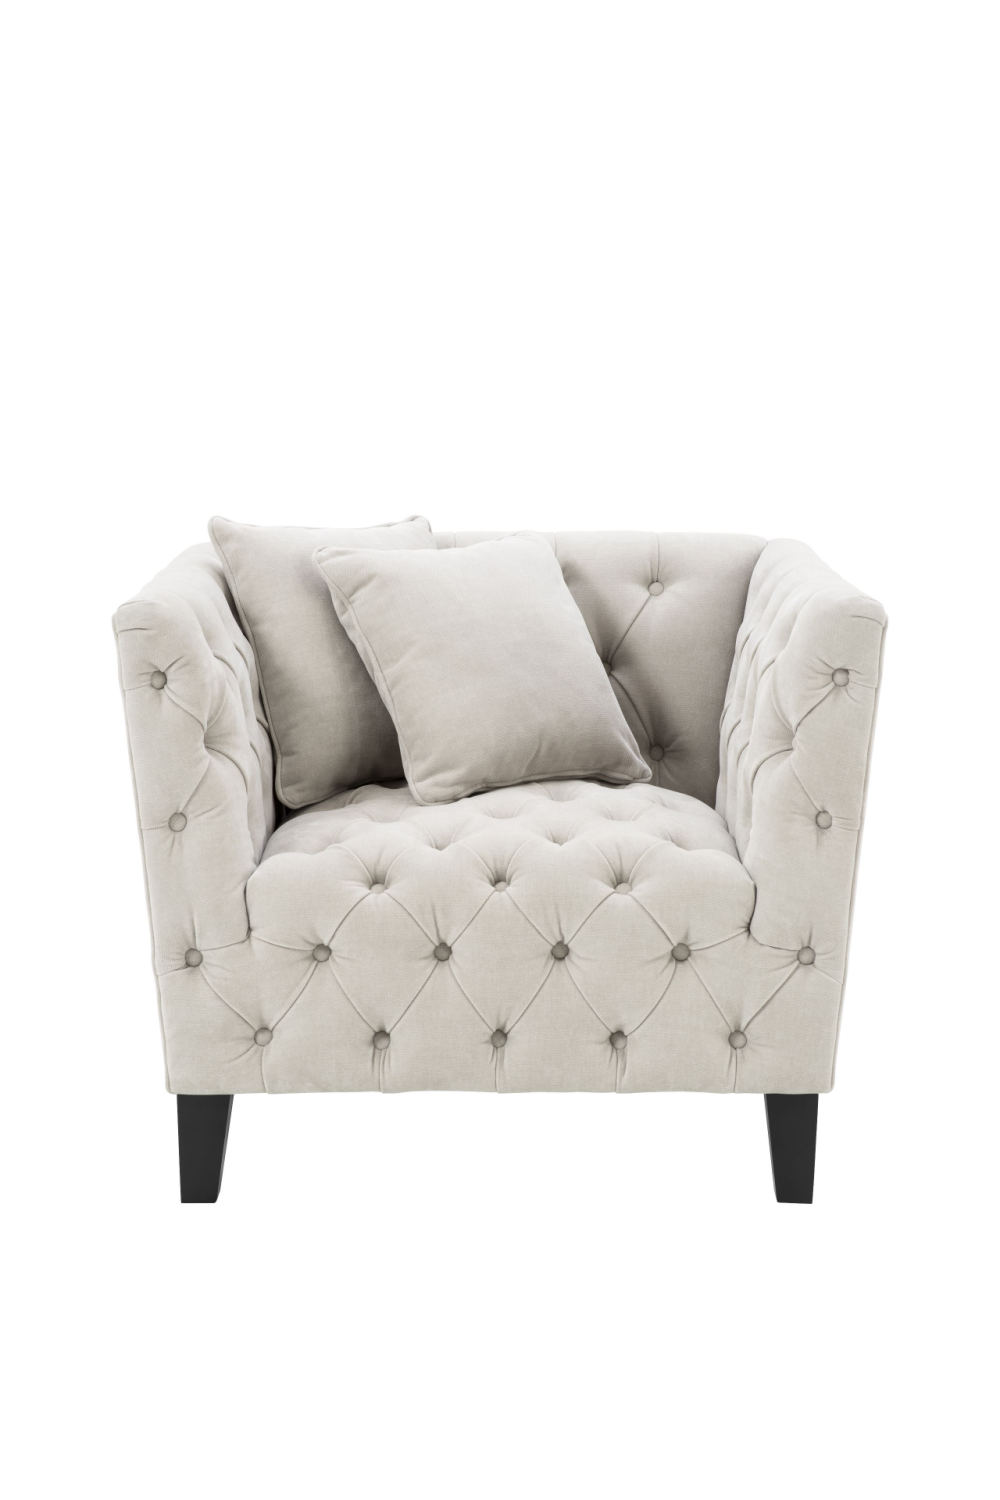 Sand Deep-Buttoned Accent Chair | Eichholtz Jason |  Woodfurniture.com